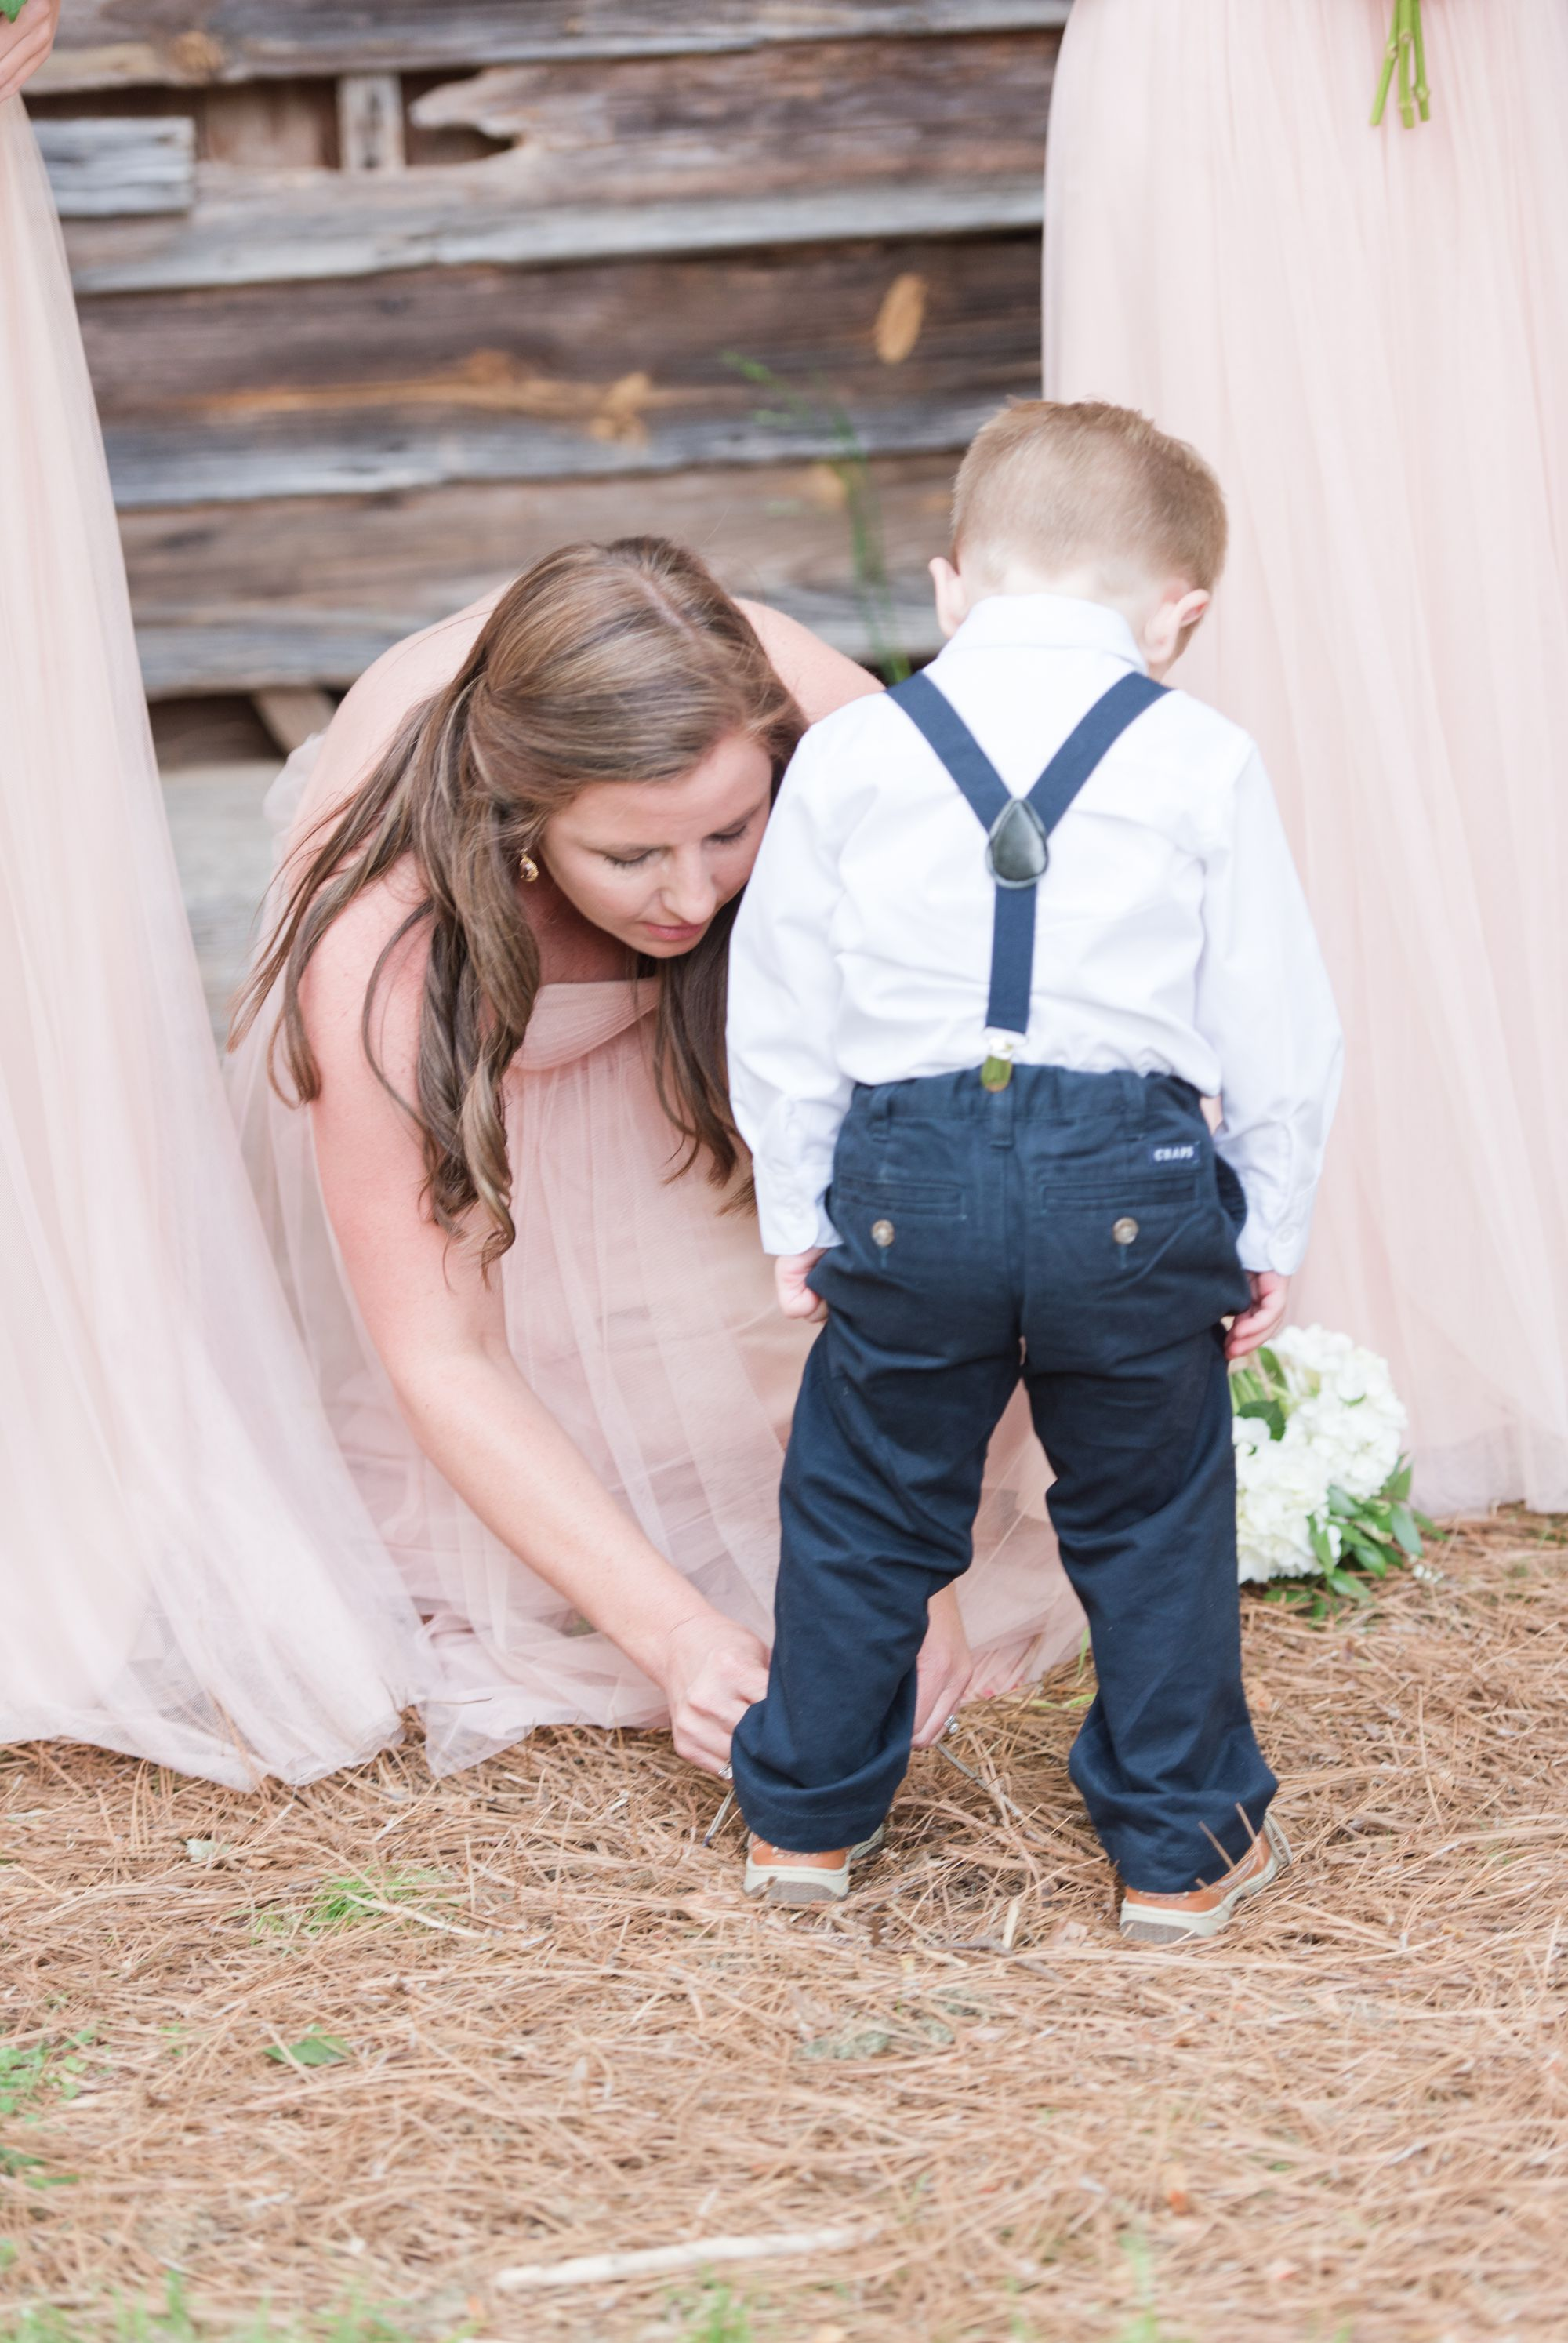 beaver-dam-house-davidson-nc-wedding-photos 45